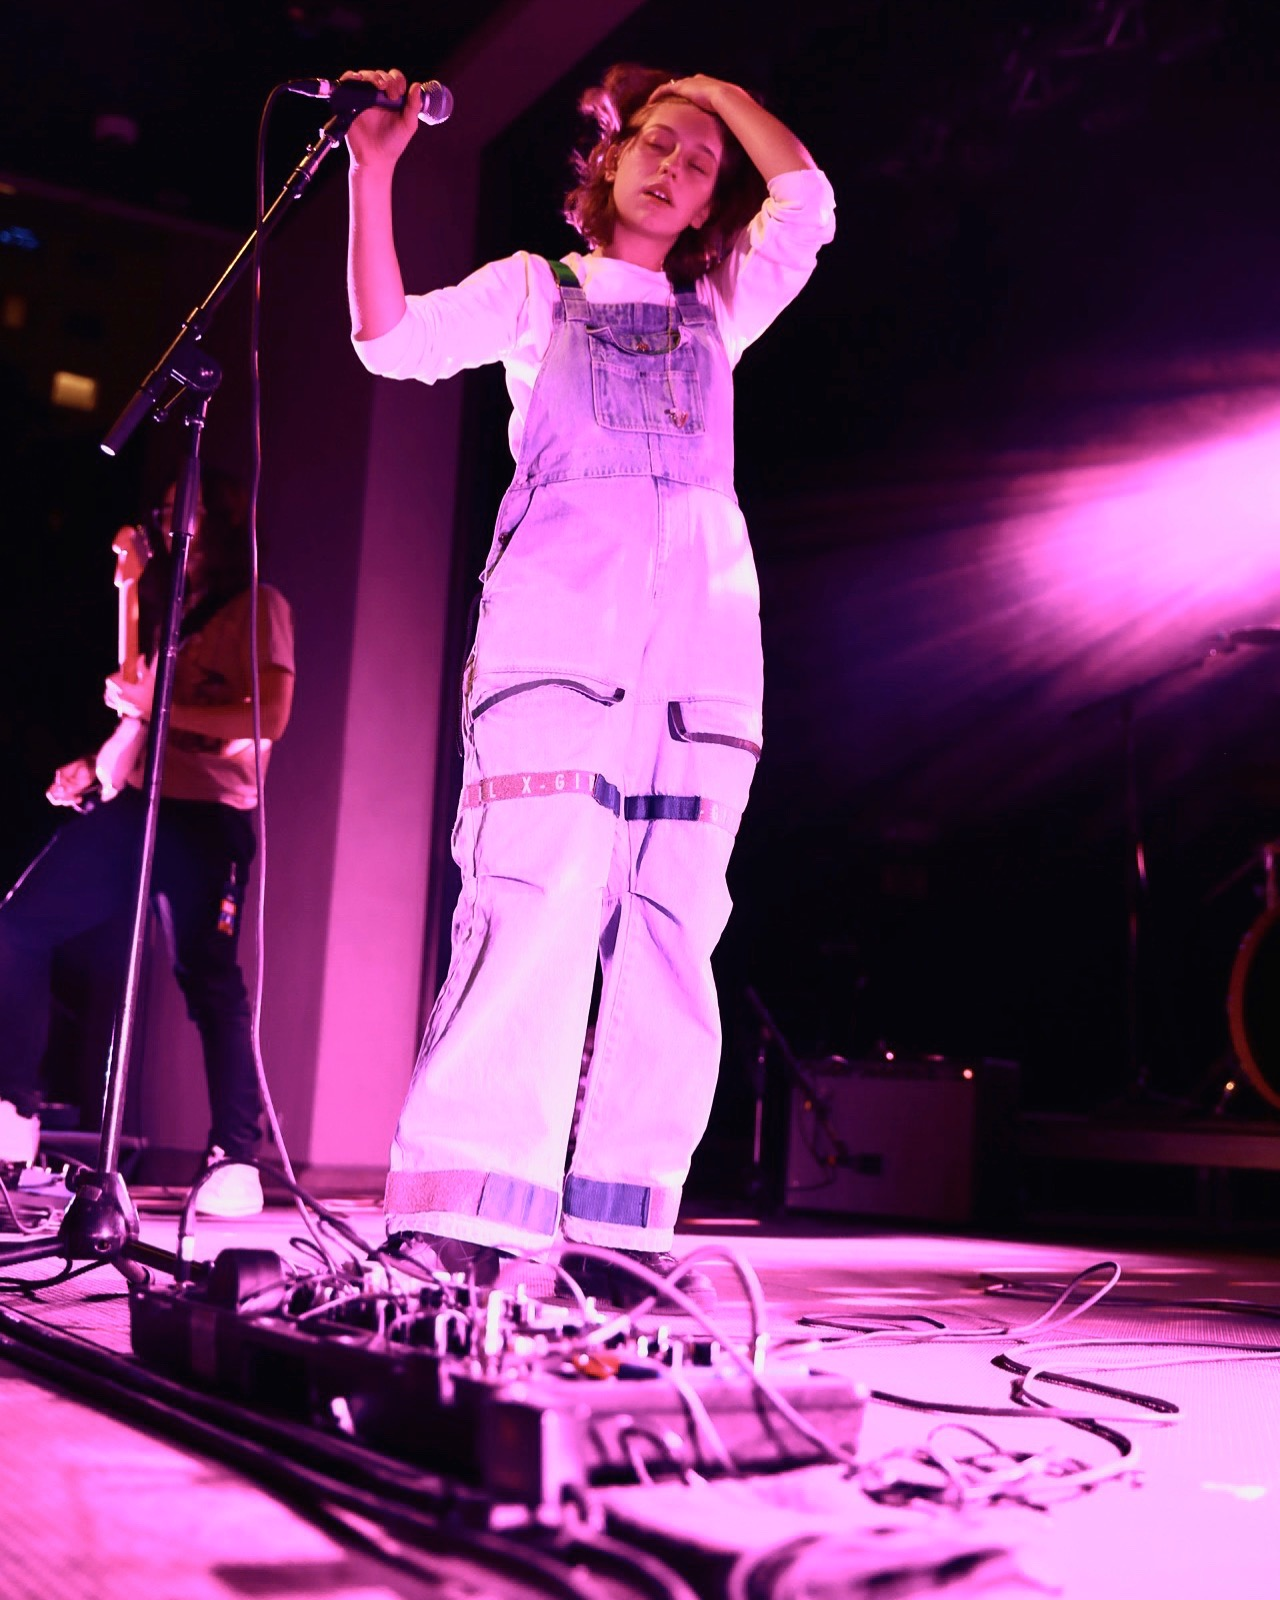 King Princess for HVNLY media in Salt Lake City, UT. Photo by Kennedy Cottrell